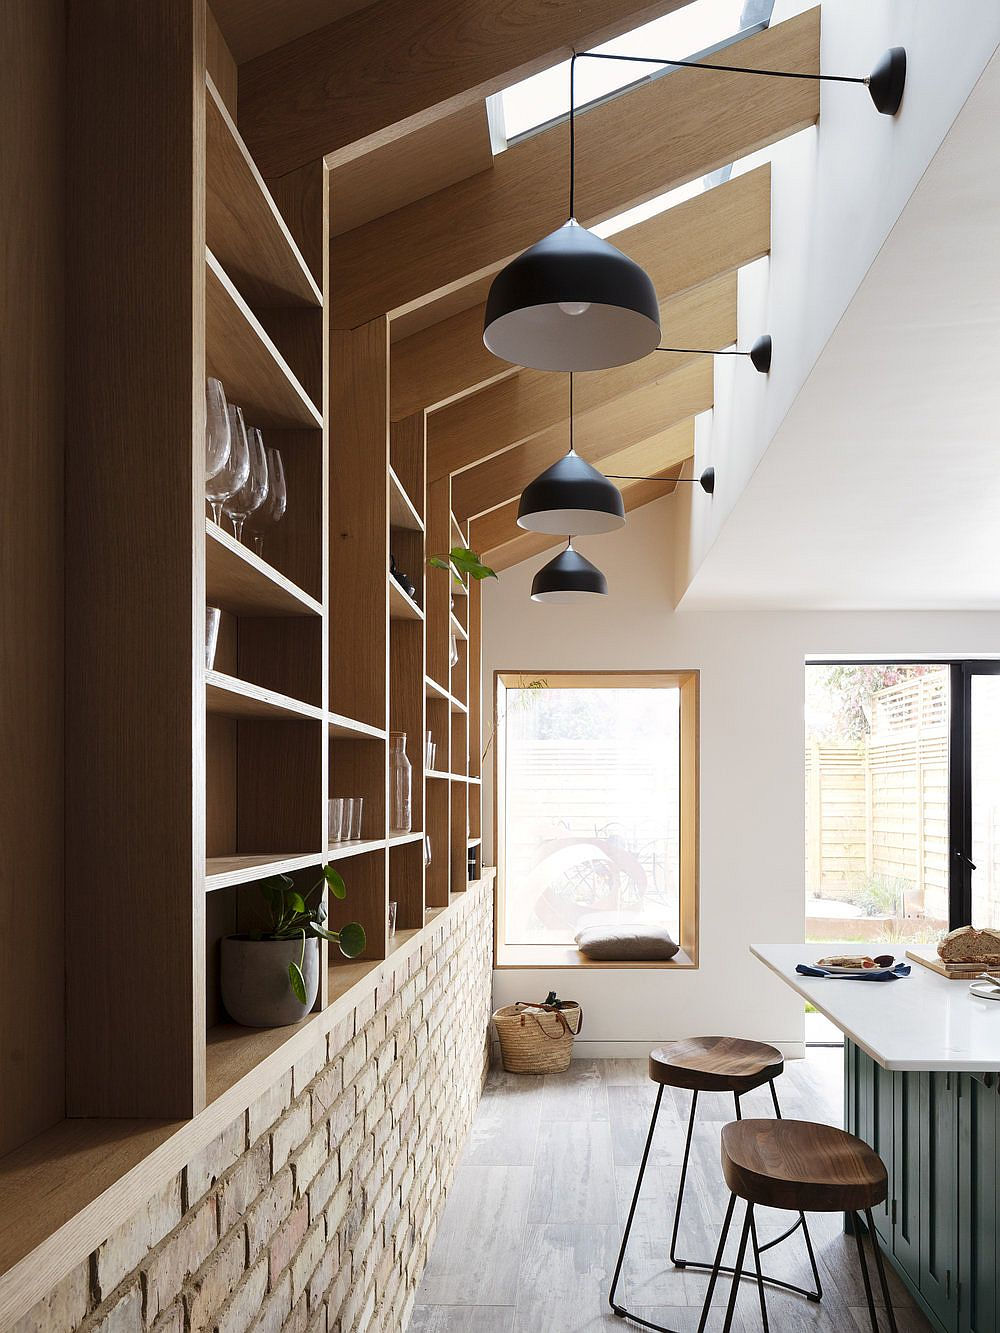 Combine-natural-light-with-gorgeous-pendants-in-the-kitchen-for-a-more-airy-inviting-appeal-56618